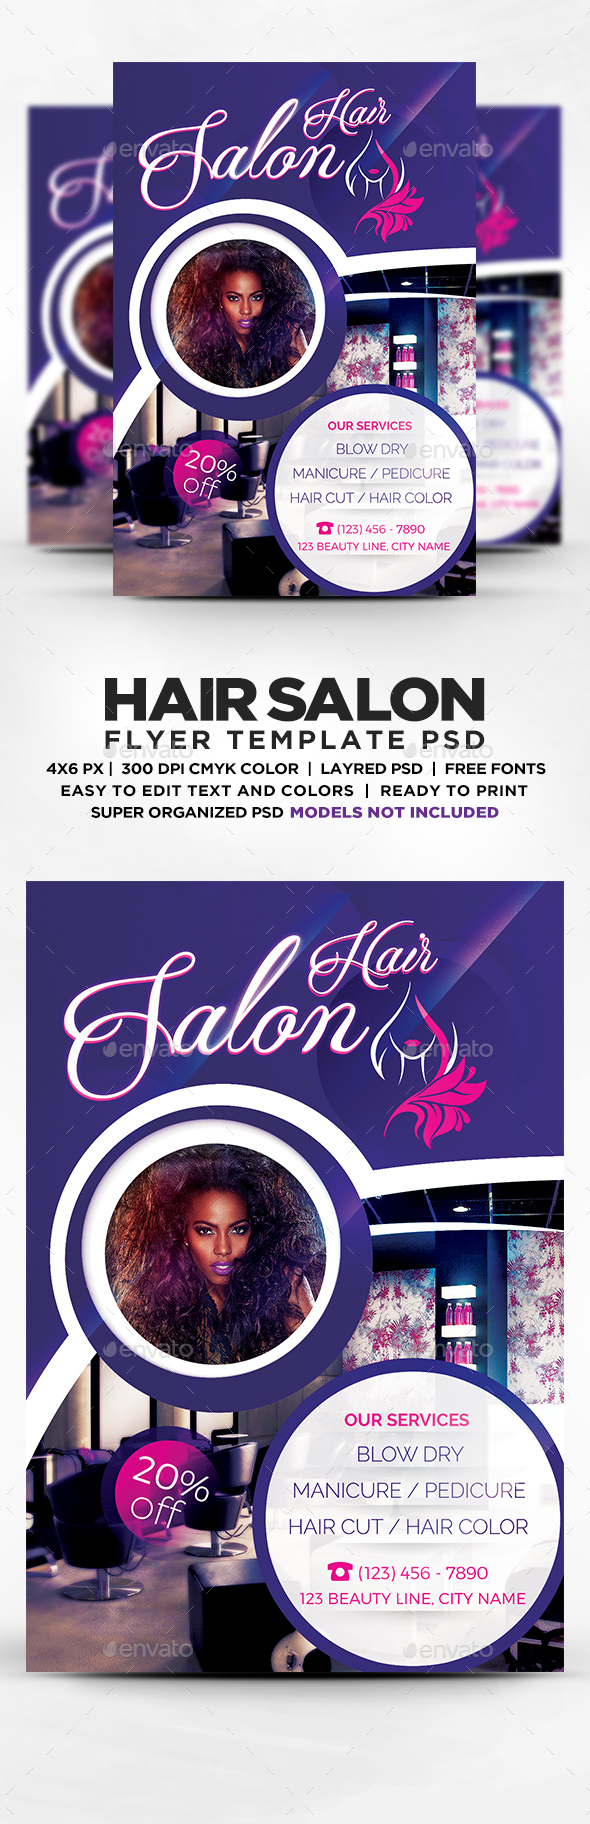 Beauty Hair Salon Flyer Template PSD